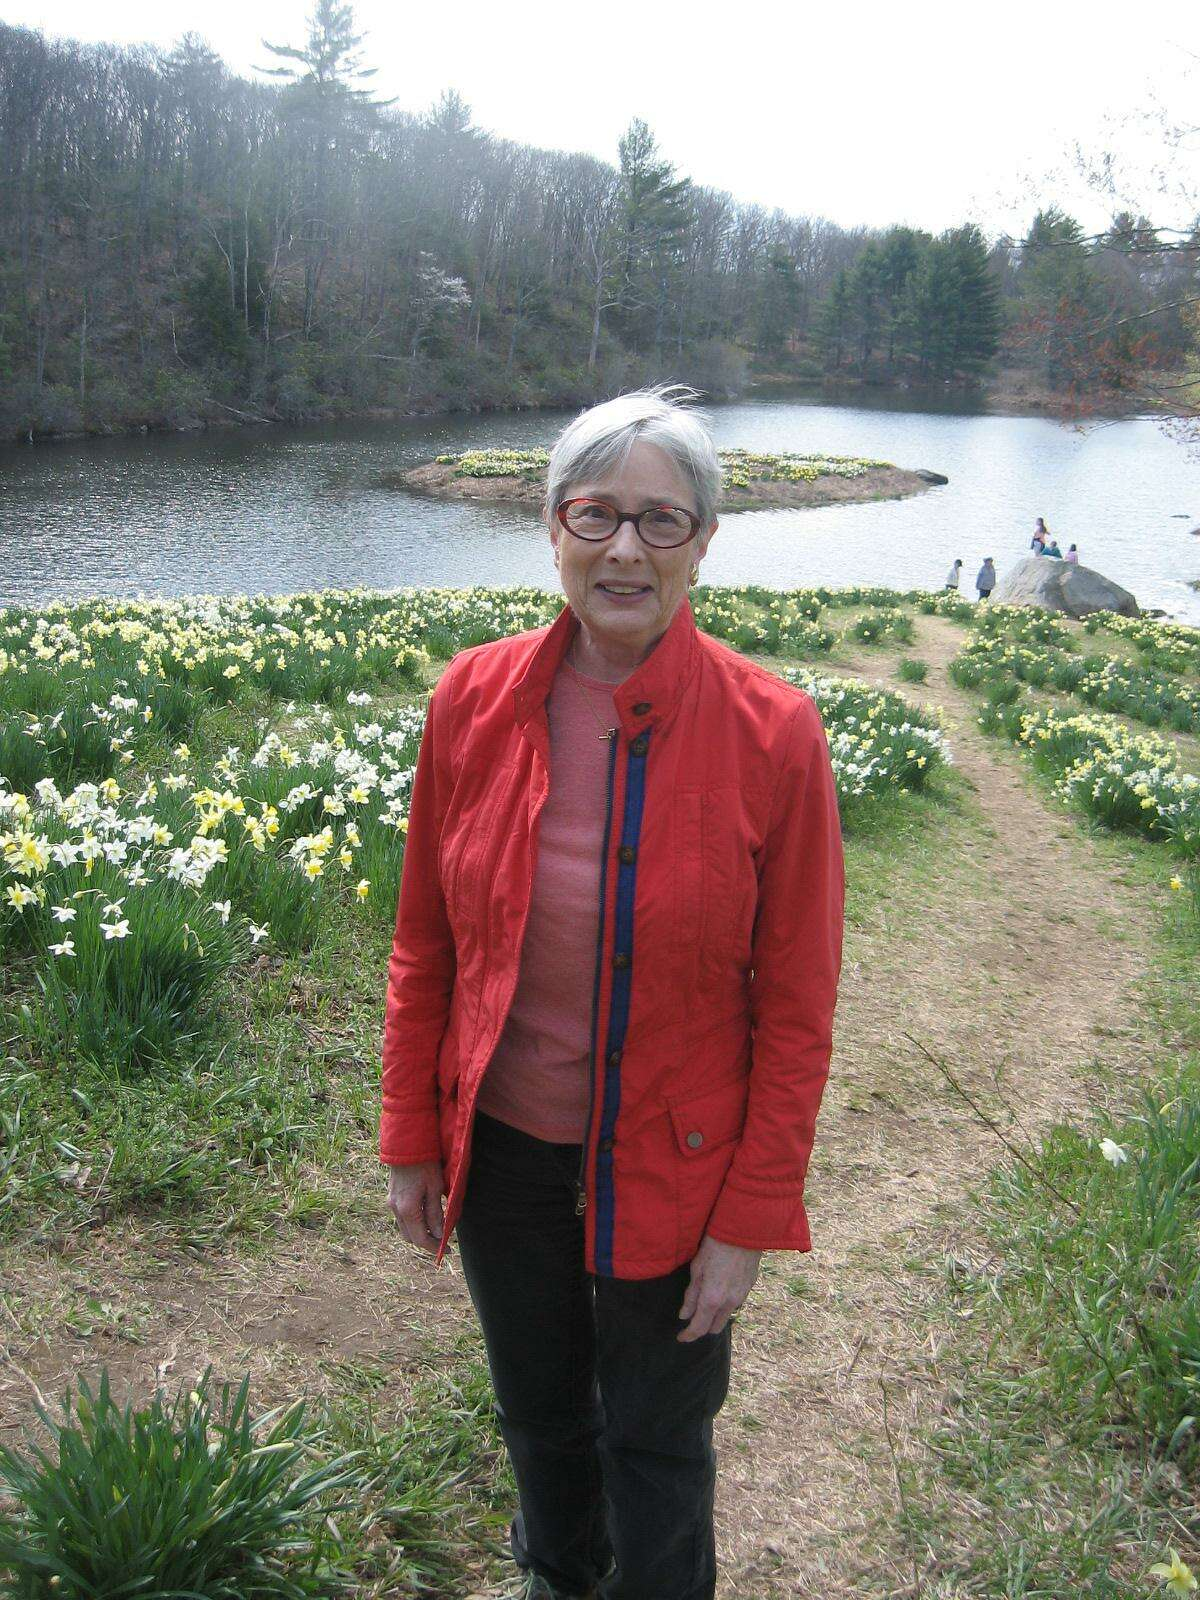 Polly Brooks of Northfield was recently appointed president of the Federated Garden Clubs of Connecticut, a branch of National Garden Clubs, Inc..